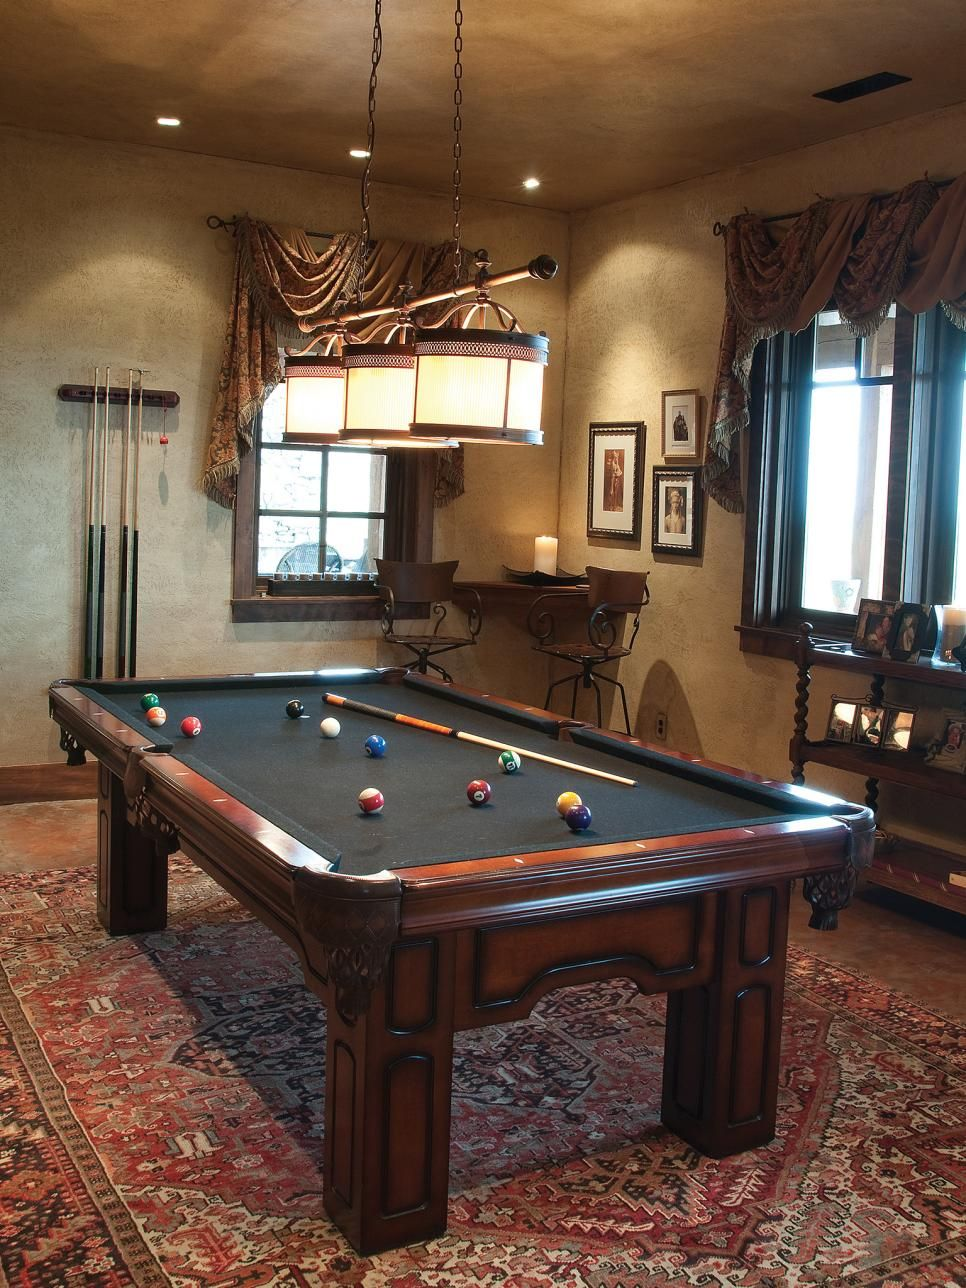 Rec Room Bar Designs: A Lotus-pattern Oriental Carpet And Antique Pool Table